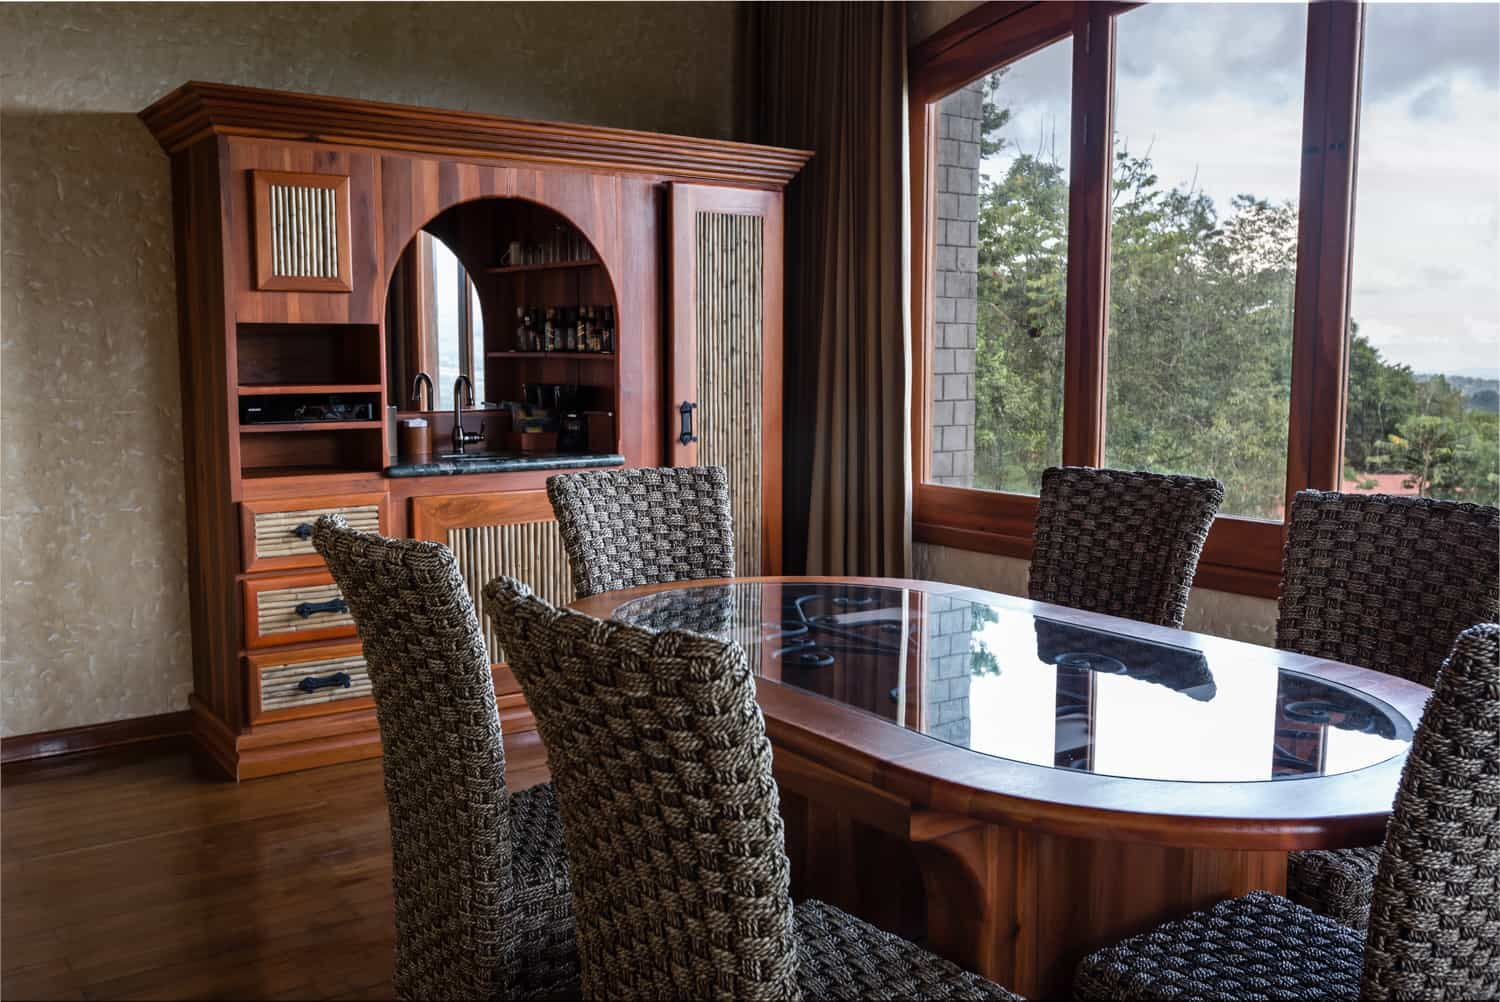 Dining table for wedding guests who can enjoy views of rainforest.